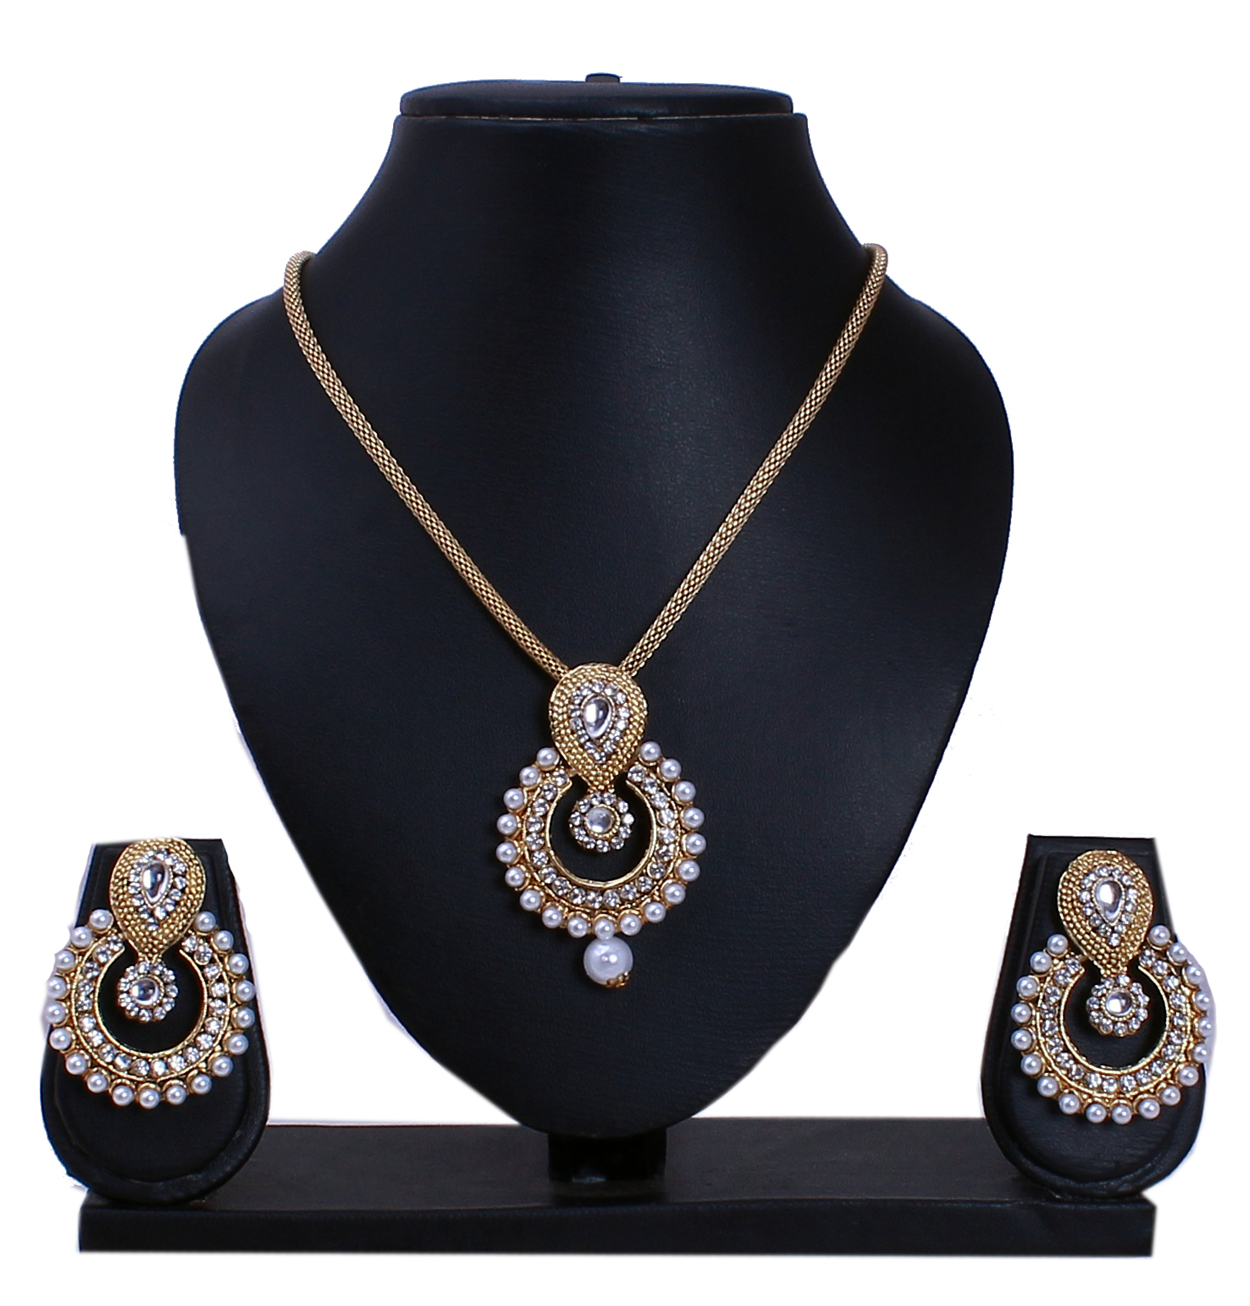 Groovy Necklace Sets Online Online Shopping For Necklaces Designs Hairstyles For Women Draintrainus